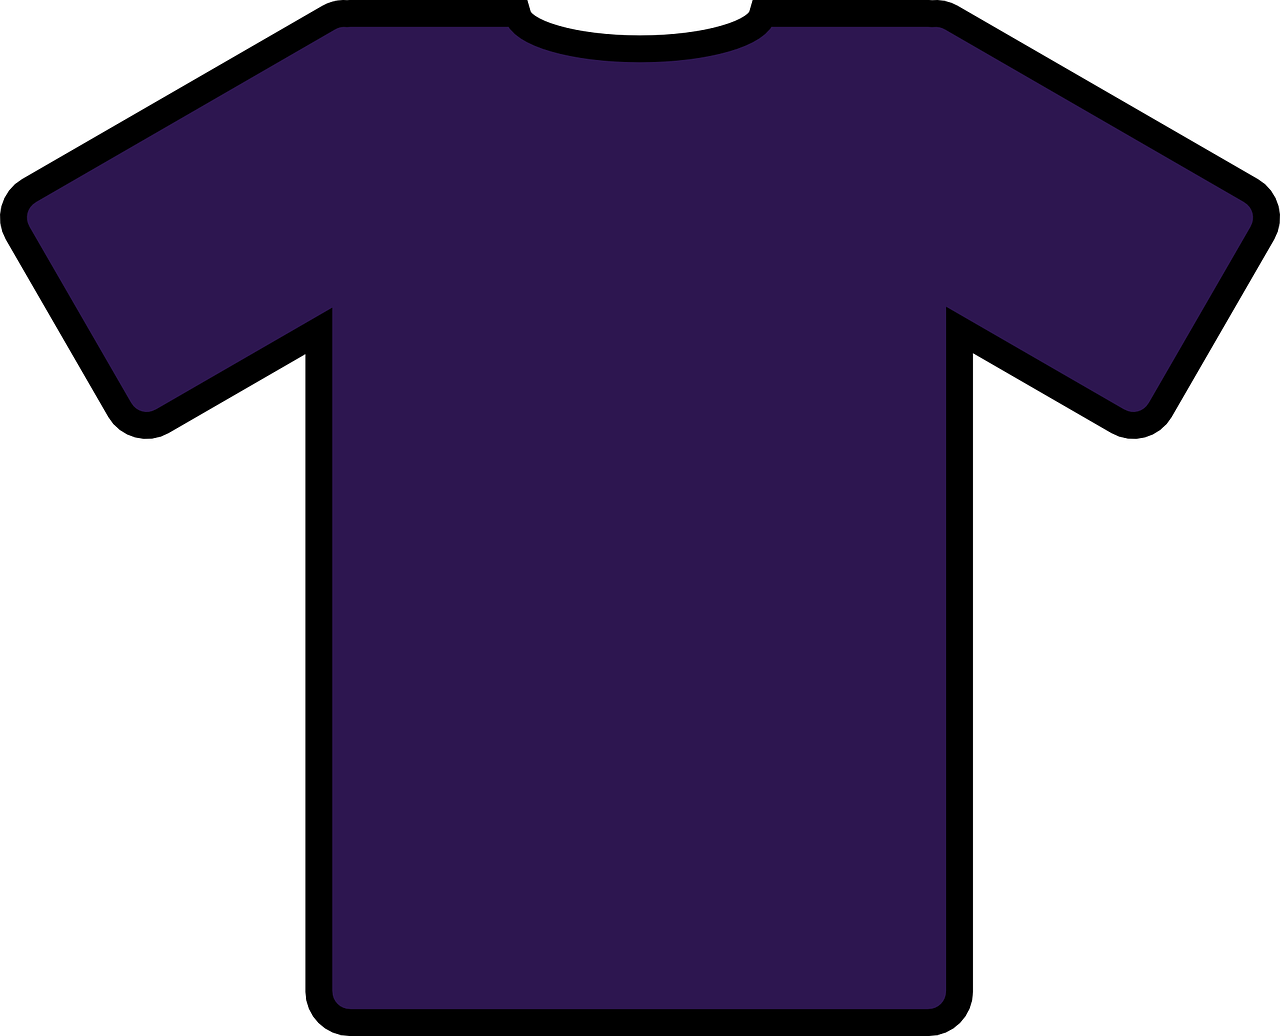 tee shirt purple free photo